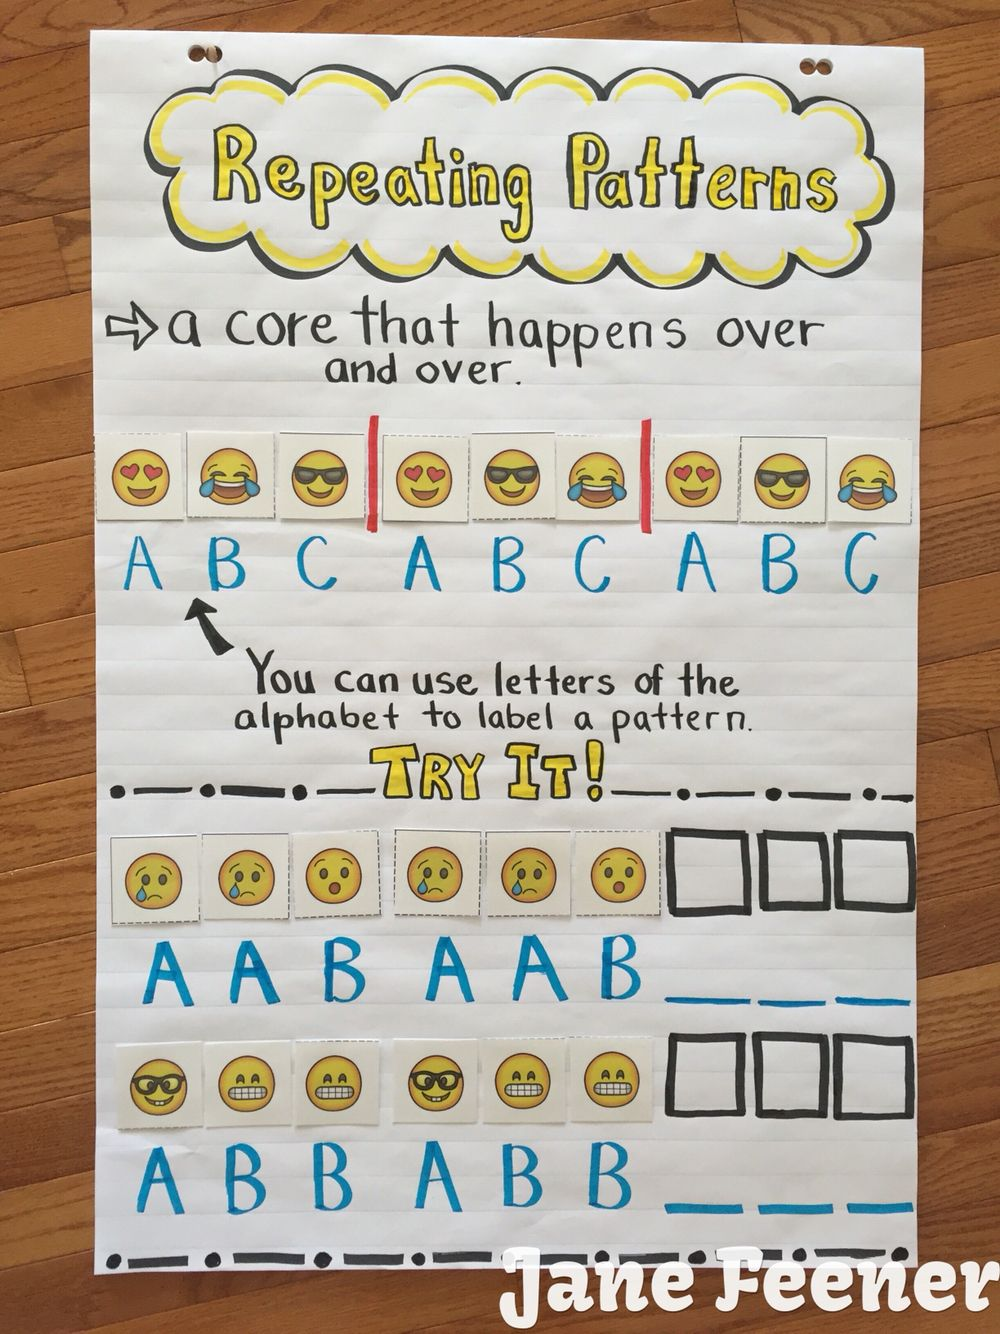 Pattern Anchor Chart Emoji Style Great To Show When Teaching Patterns Math Workshop Activities Math Workshop Math Patterns [ 1334 x 1000 Pixel ]